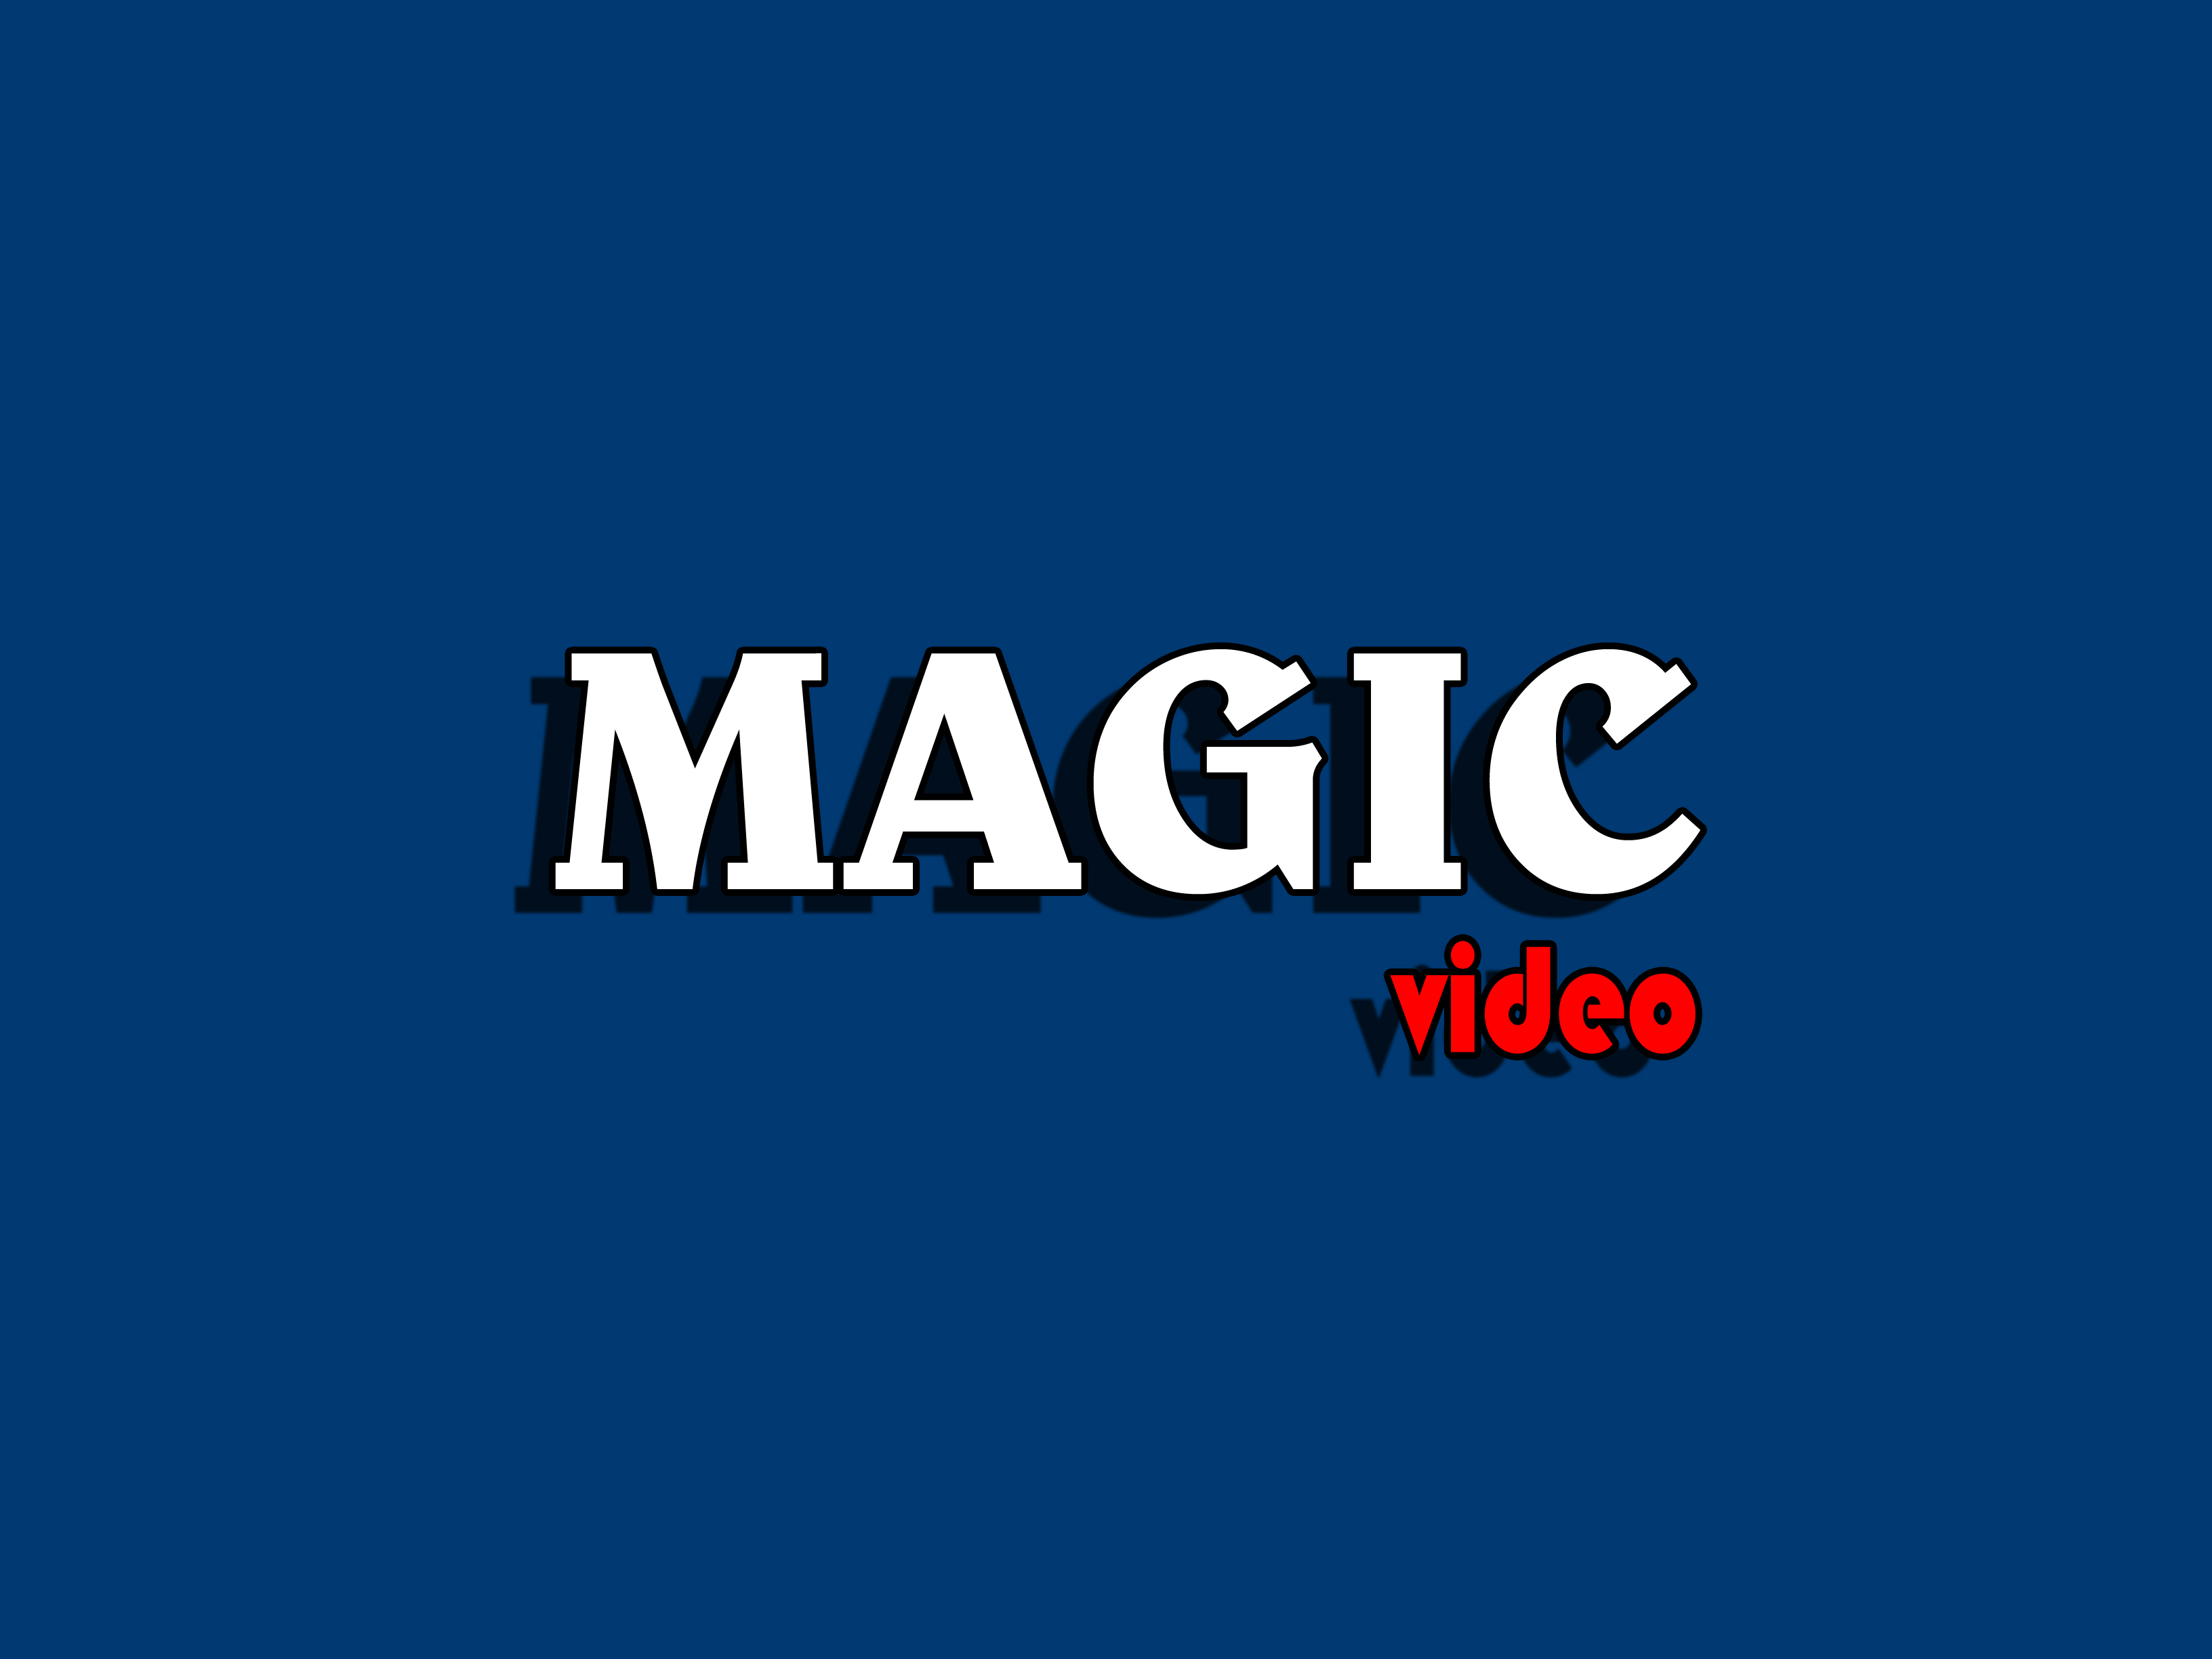 MAGIC video company publish